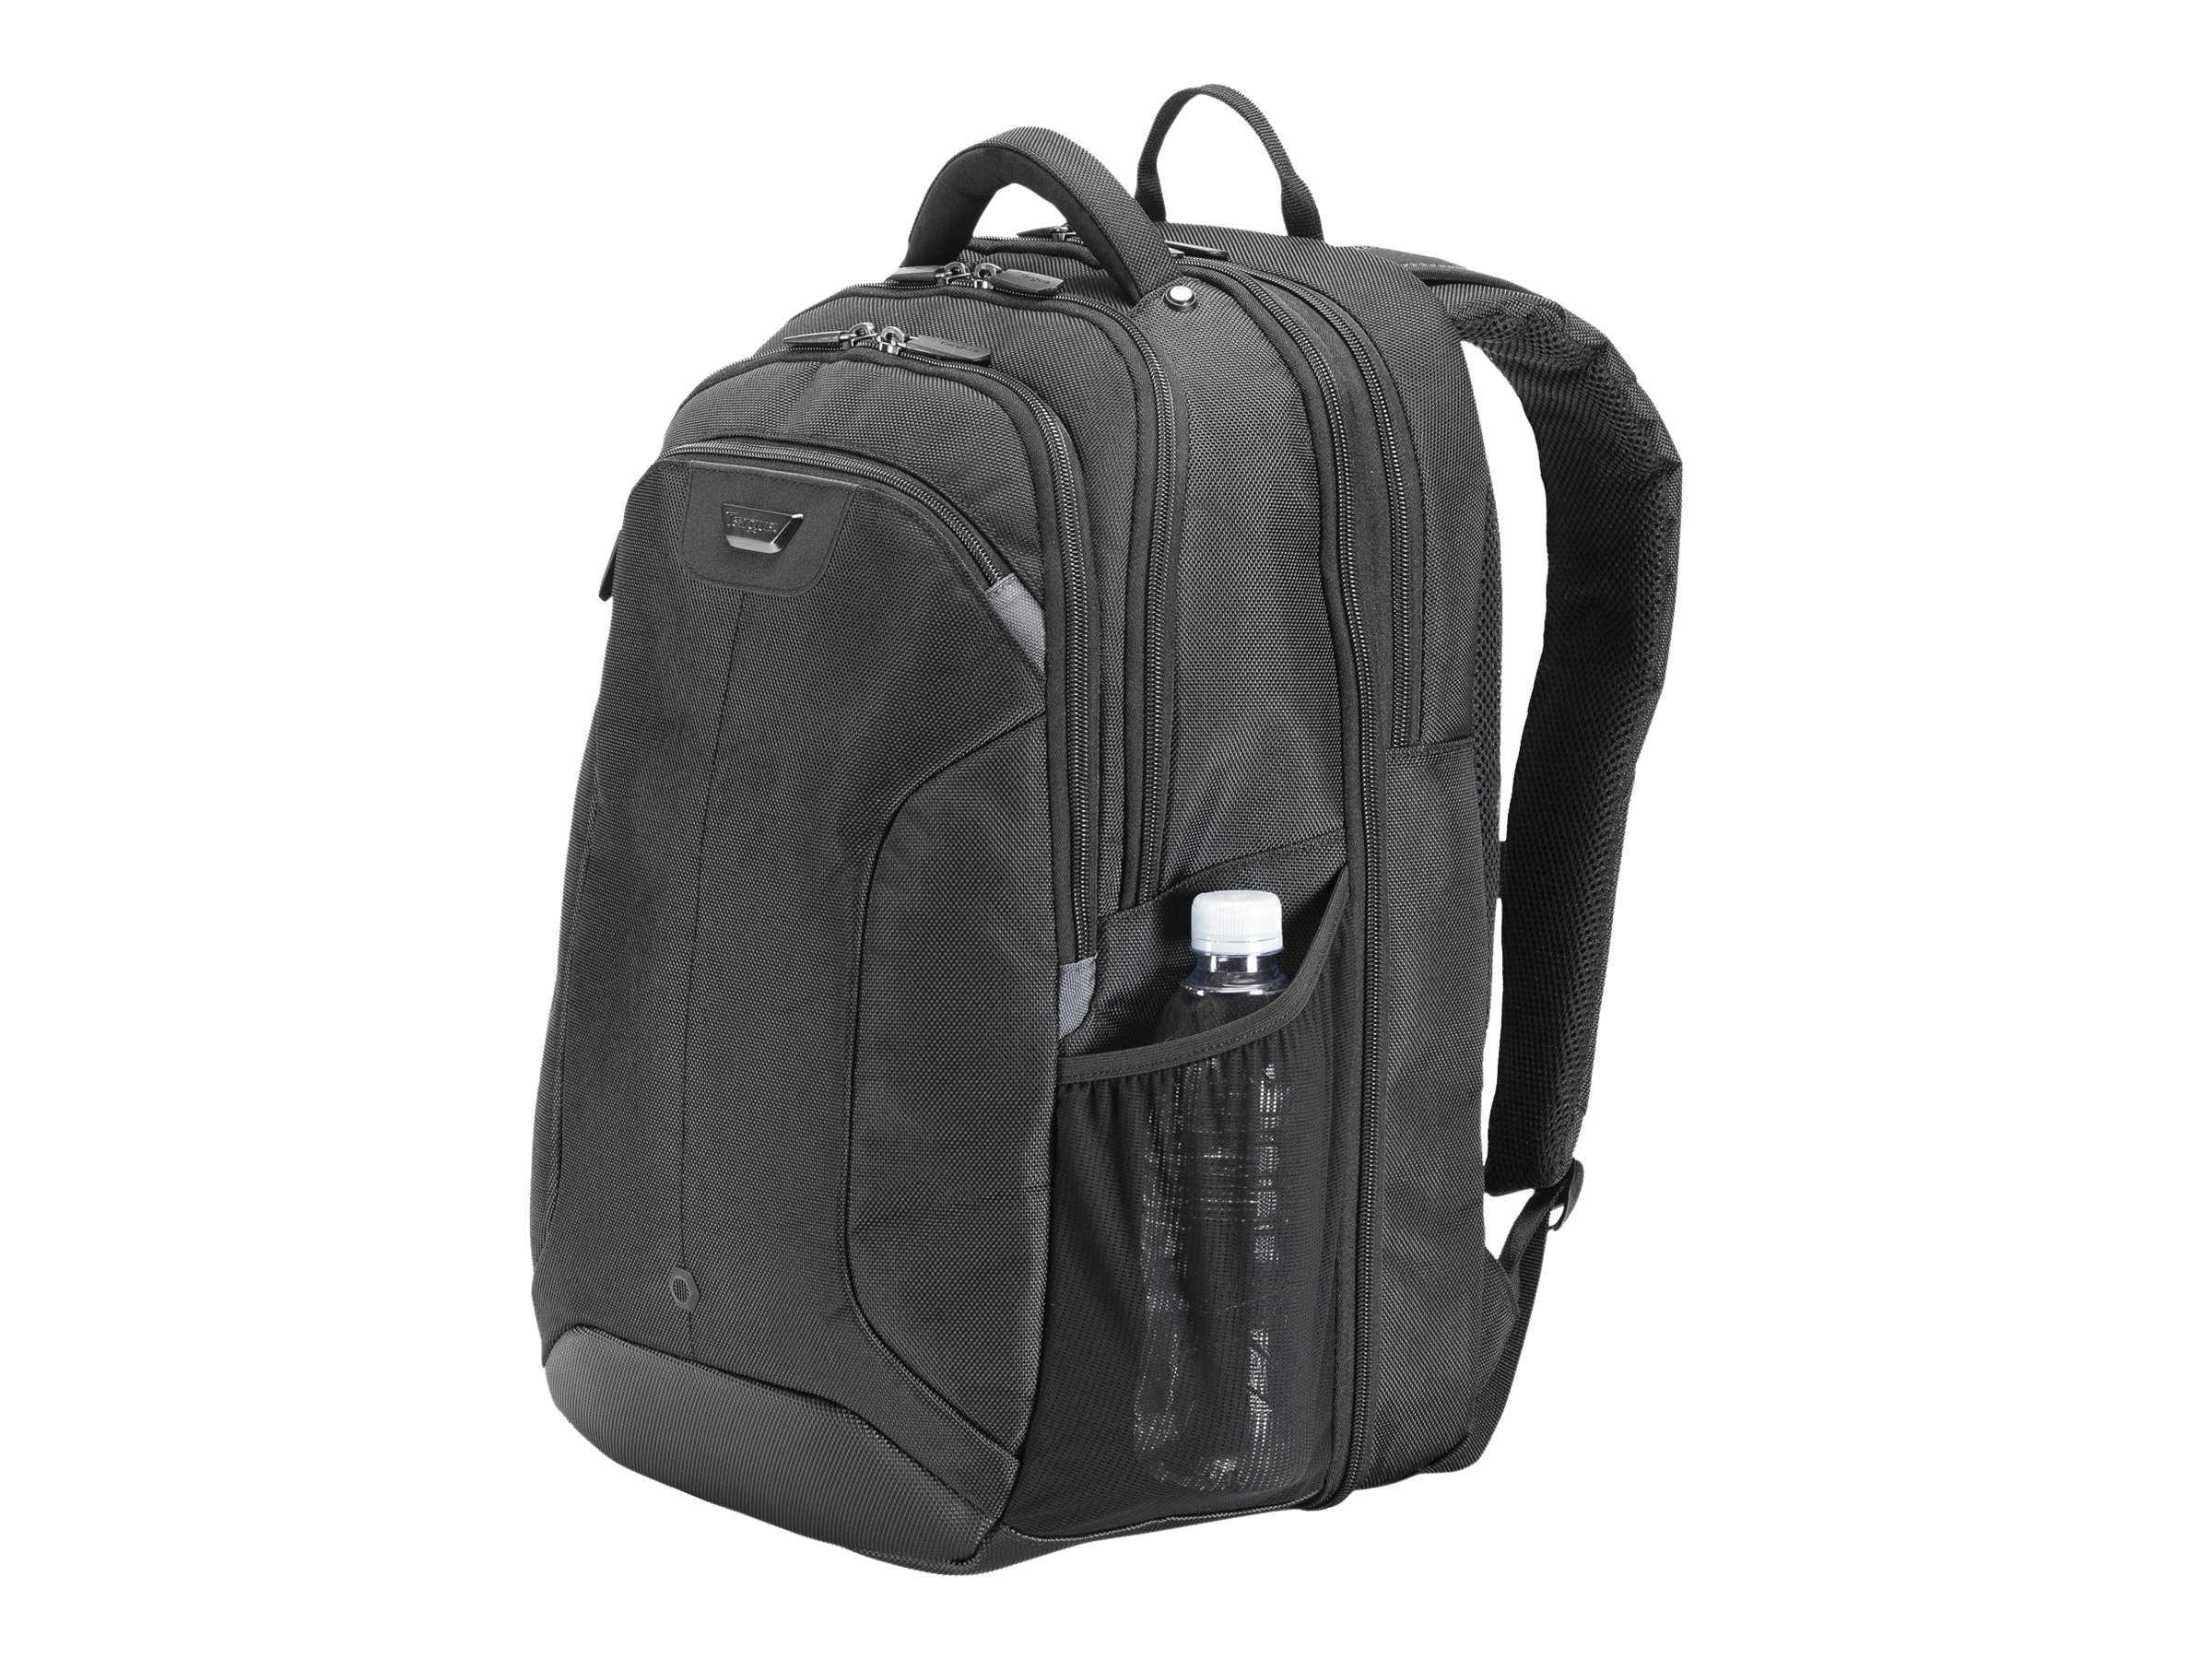 Targus Corporate Travel Backpack, 15.4 Nylon, Black, CUCT02B, 8058696, Carrying Cases - Notebook